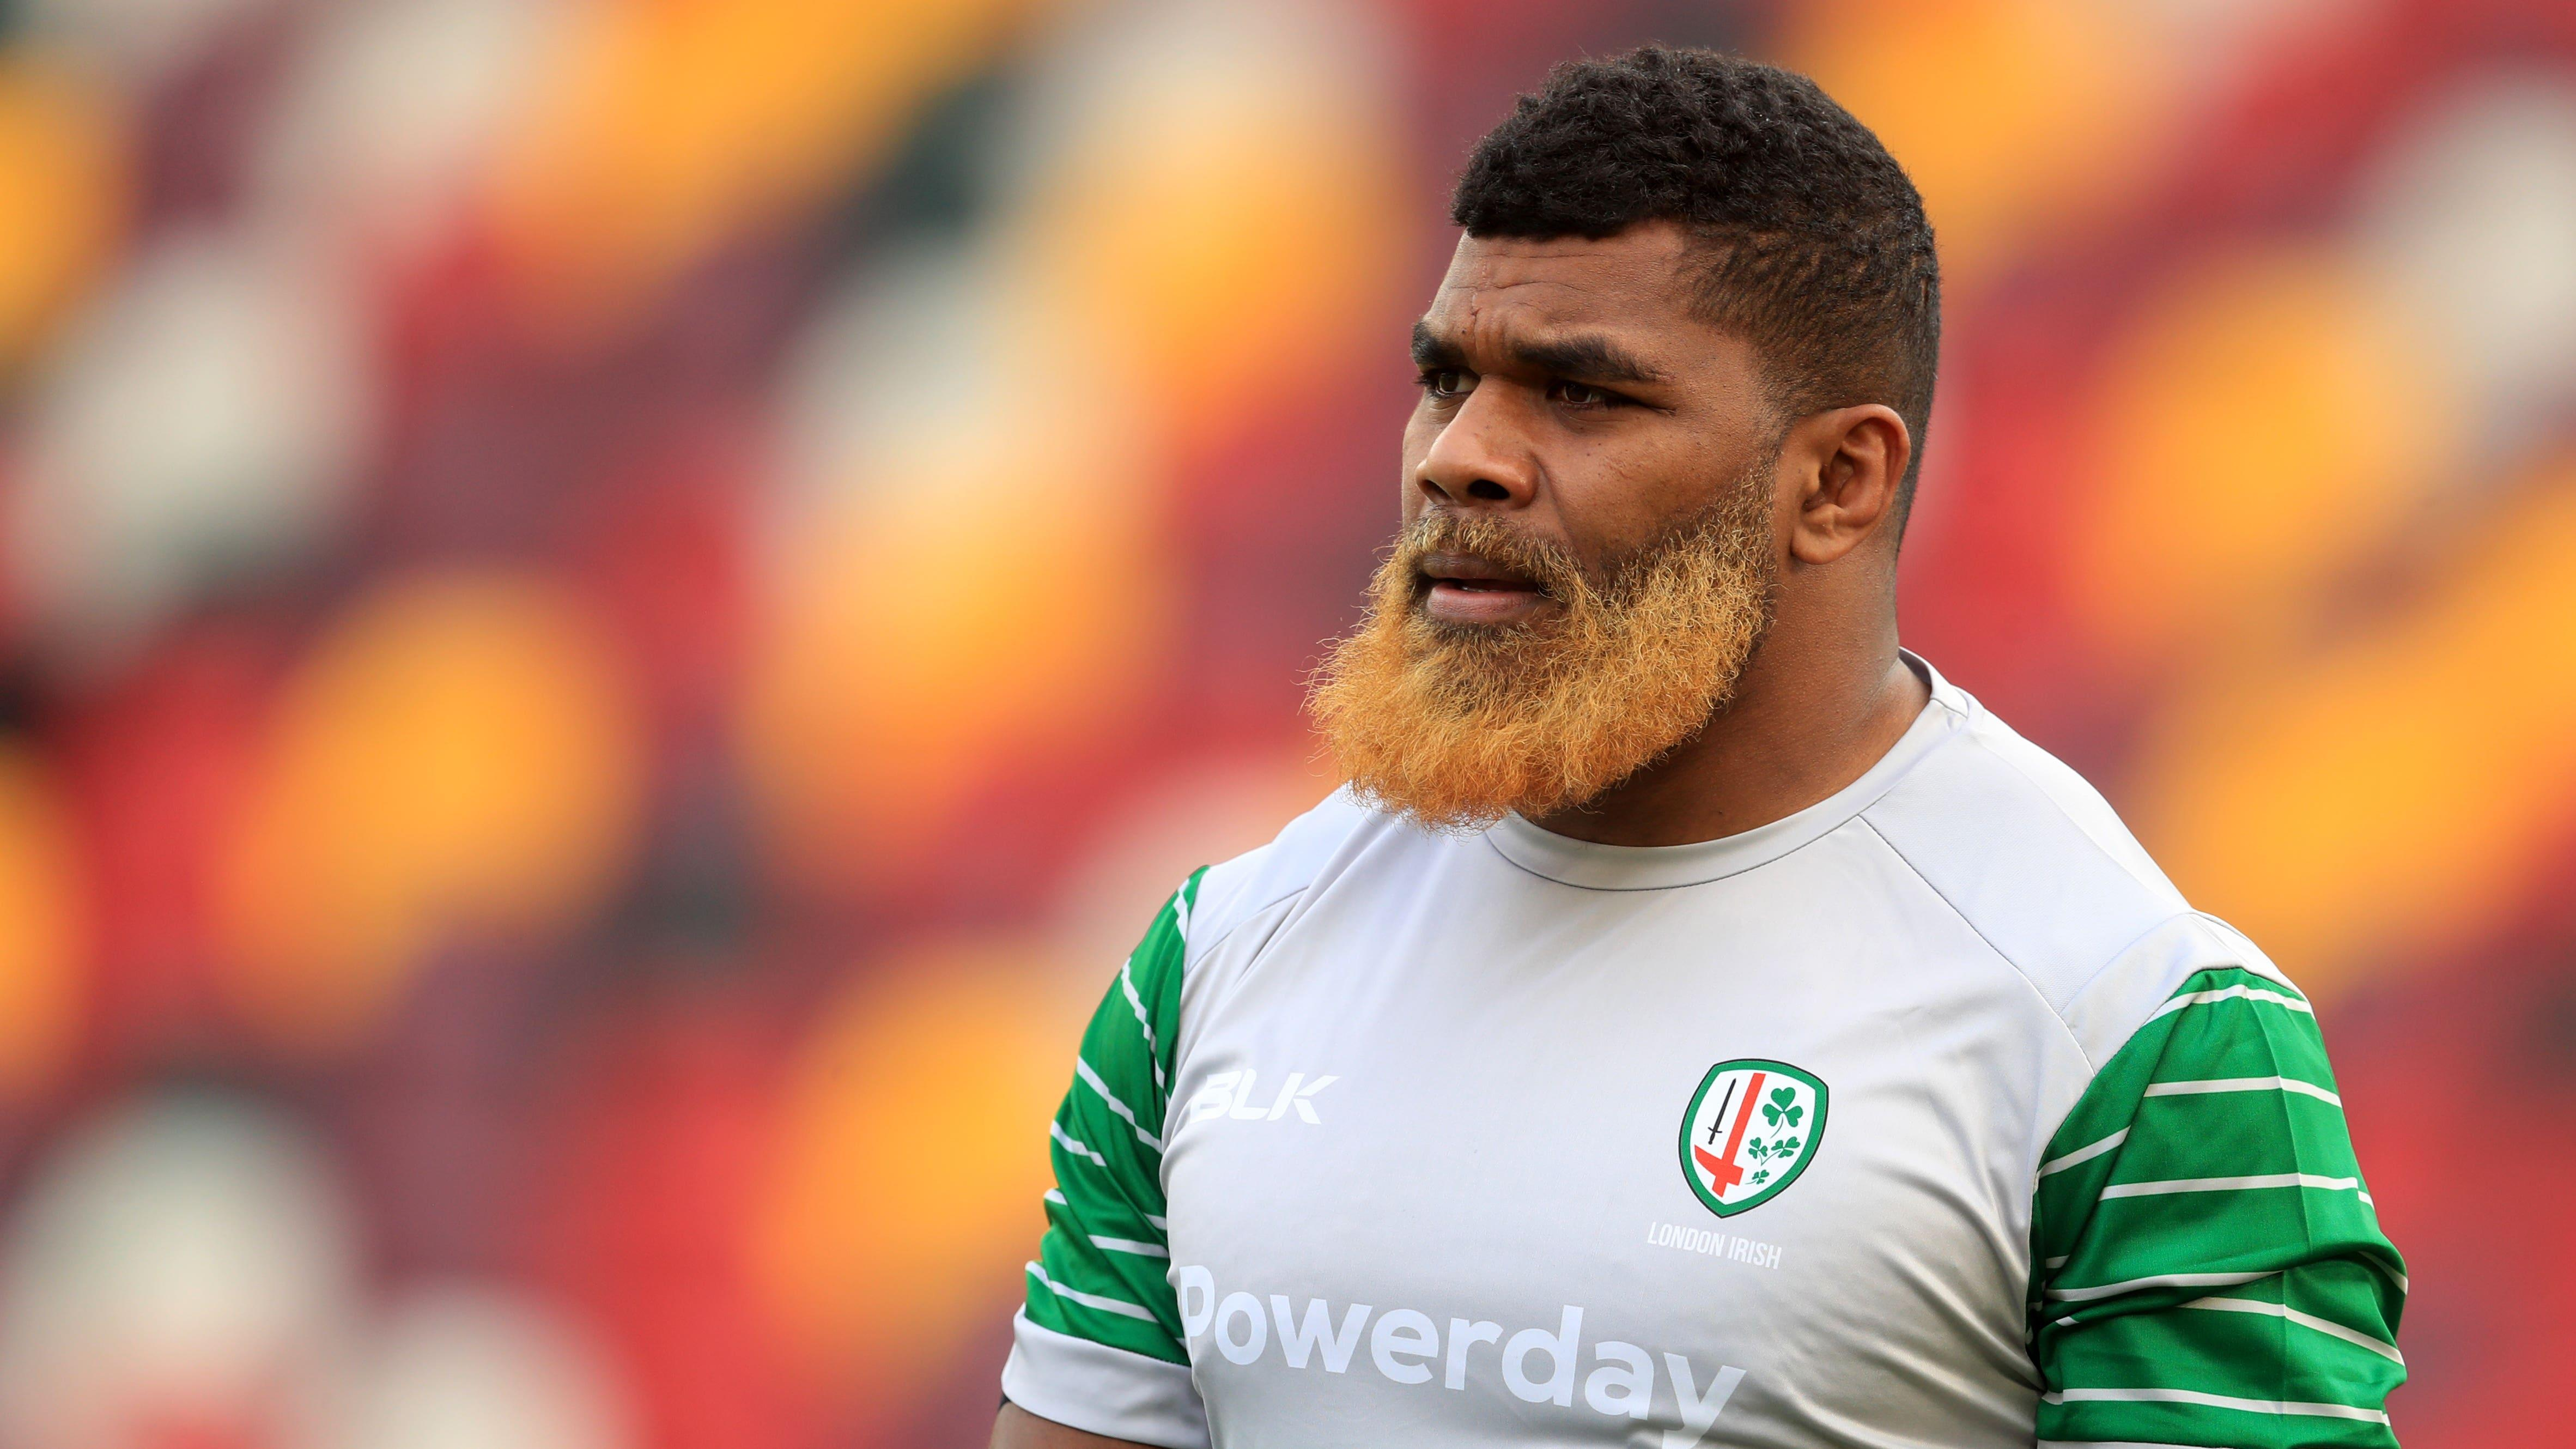 London Irish report 'racially abusive' message sent to Albert Tuisue to police